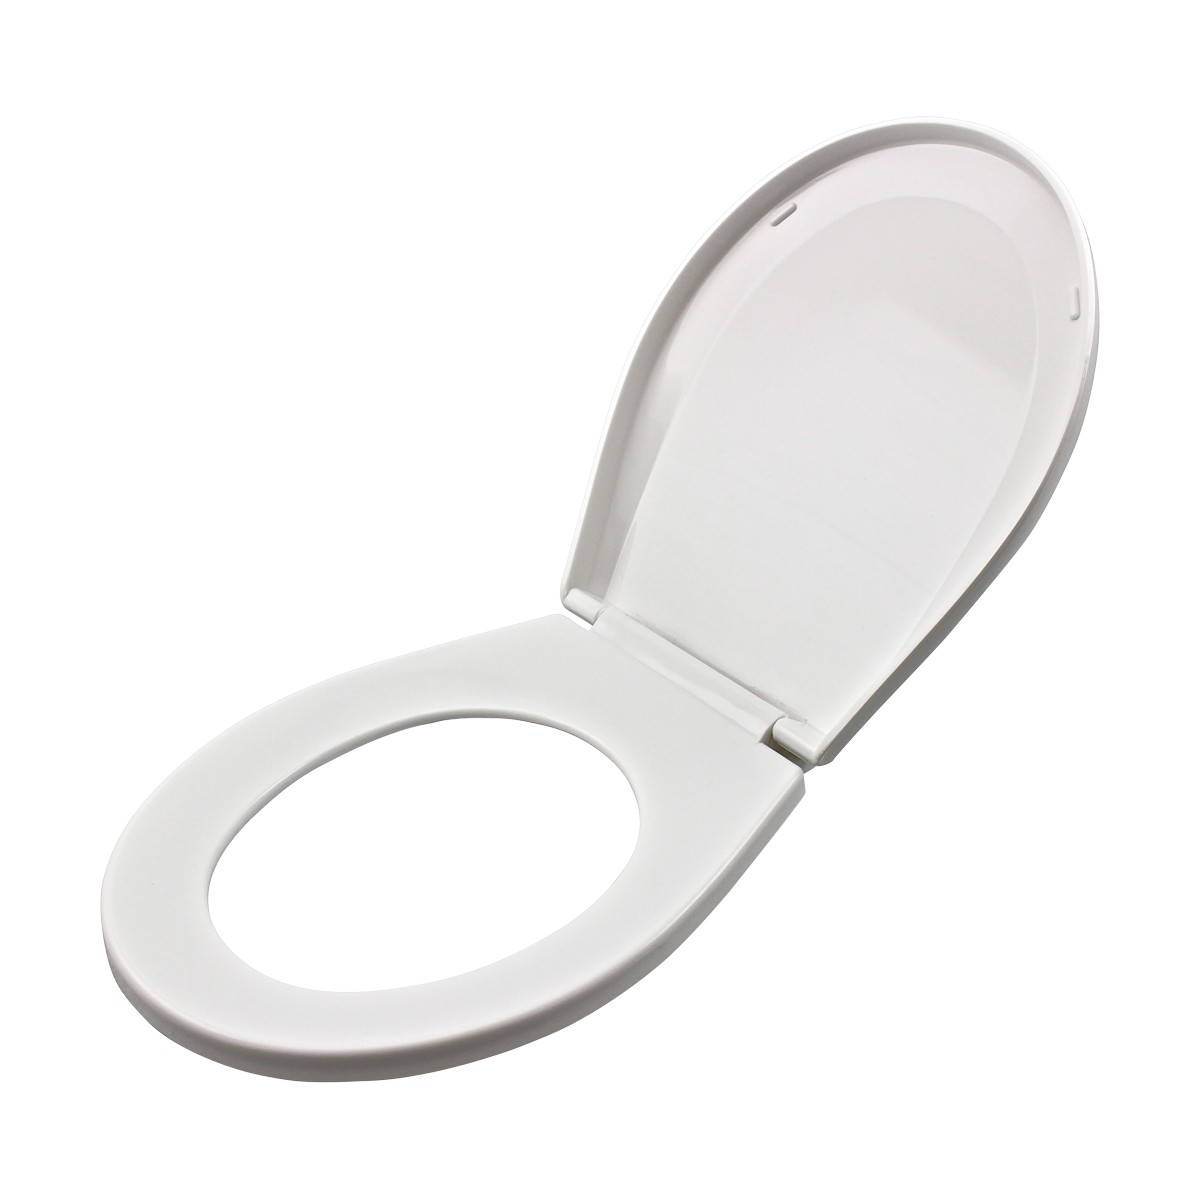 Child Sized Toilet Seat Replacement White Molded Plastic set of 4 novelty decorative replacement loo commode lavatory custom unusual luxury quality standard color design pretty